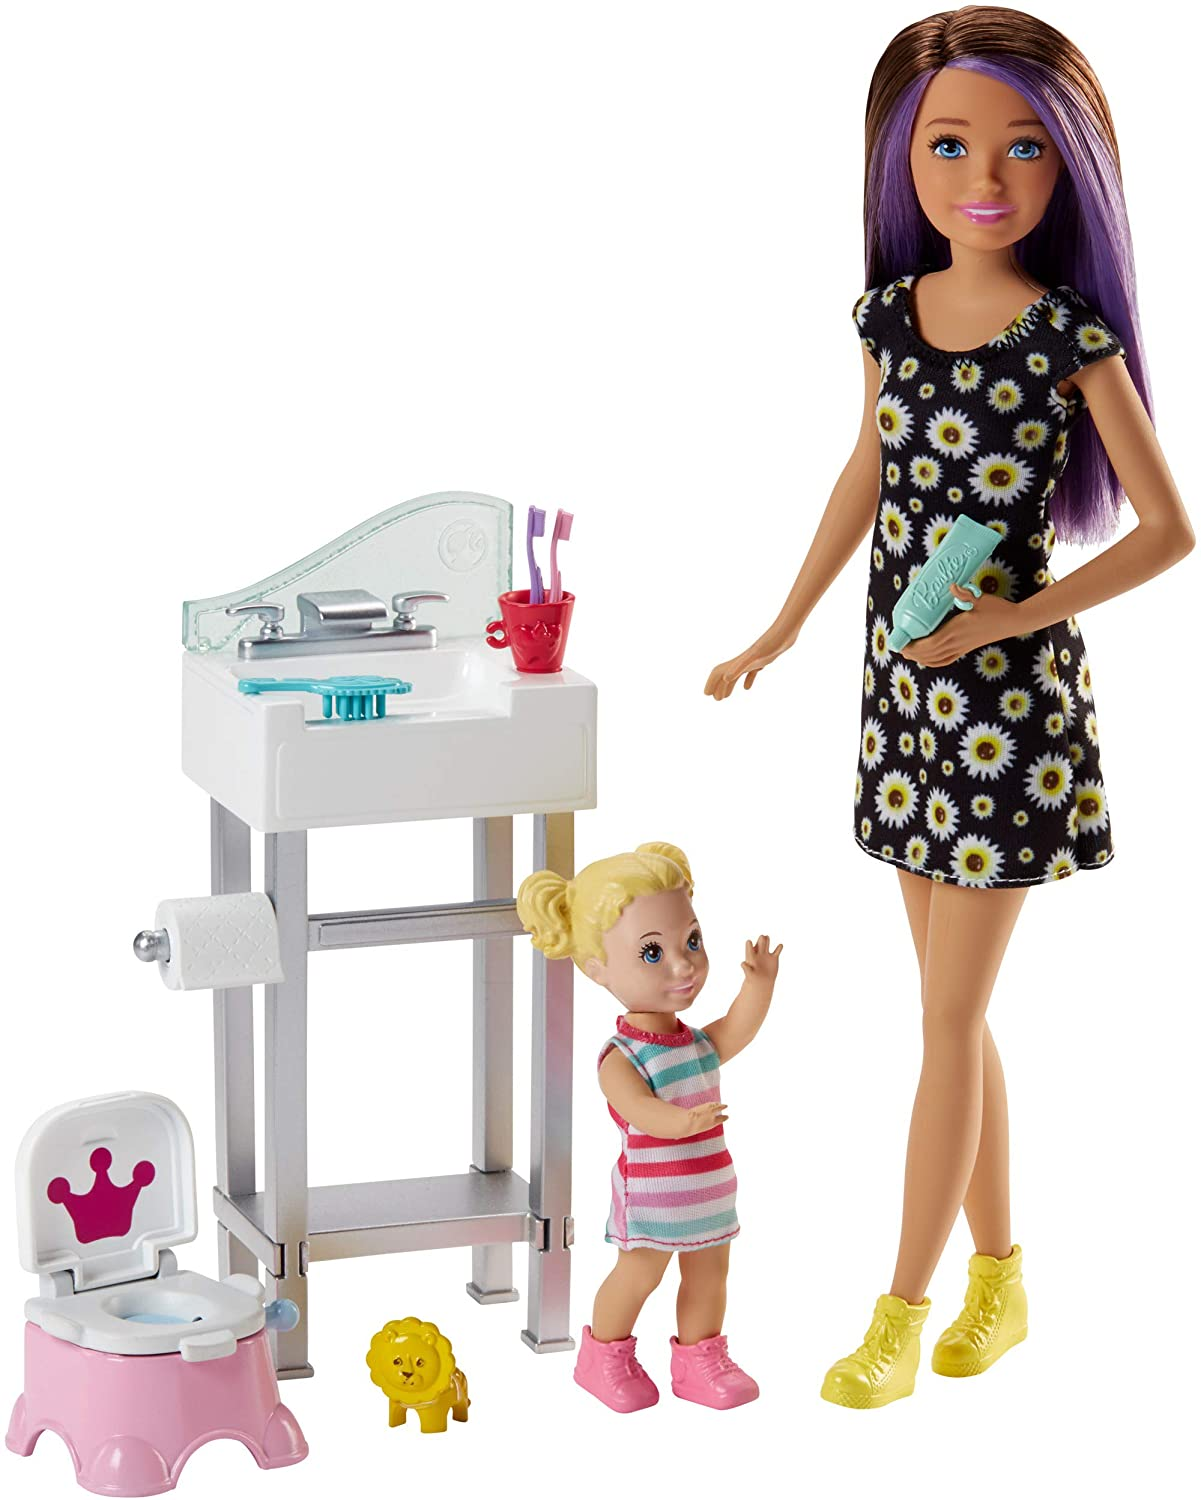 Barbie Babysitting Playset with Skipper Doll, Baby Doll, Sink, Flipping Potty Seat and Themed Accessories for 3 to 7 Year Olds